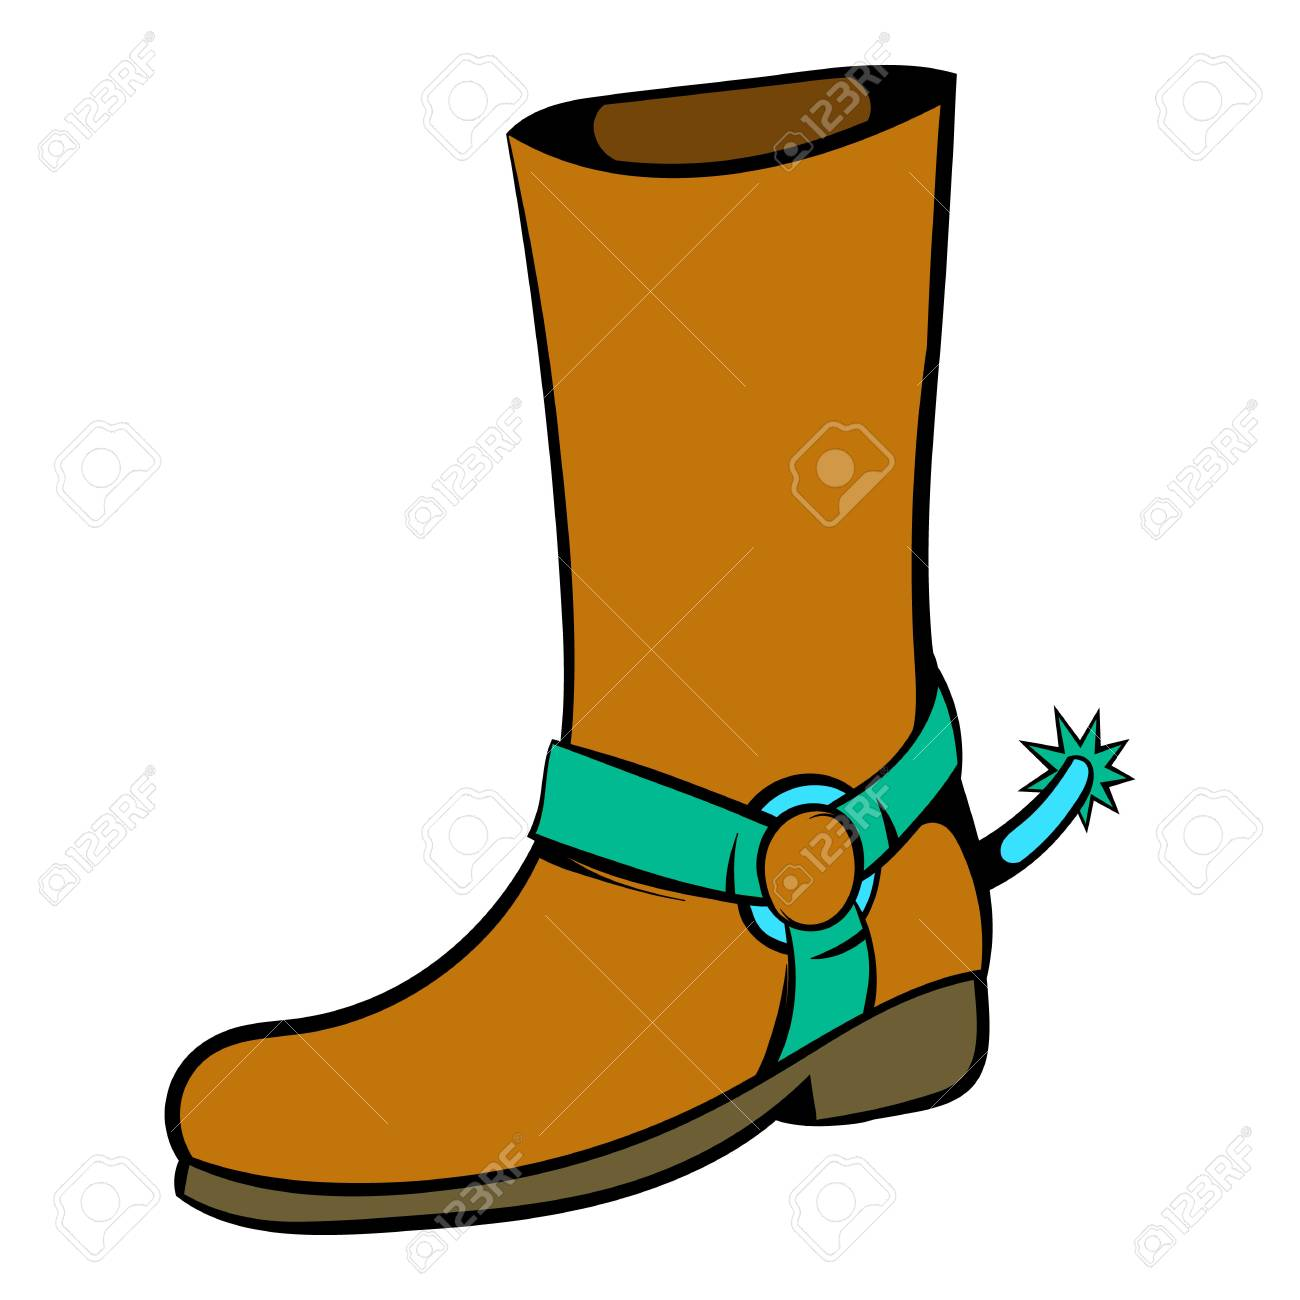 3a8ef753818 Cowboy boot icon, icon cartoon